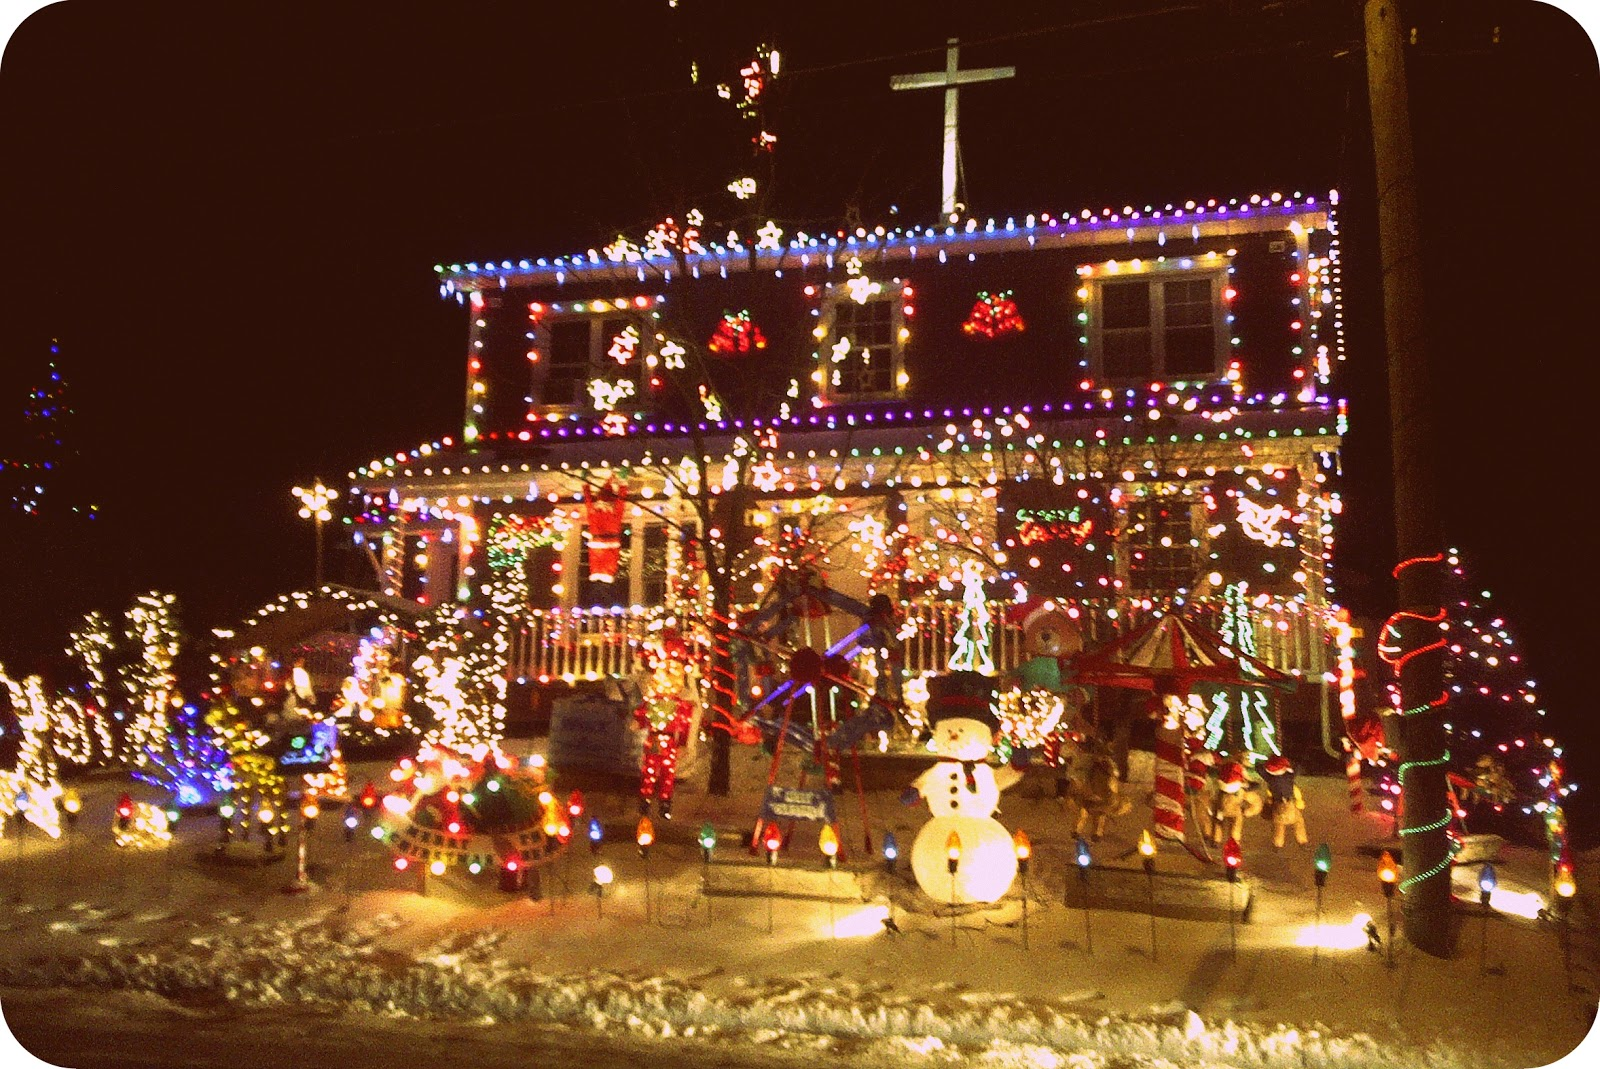 check out the christmas lights - How To Check Christmas Lights